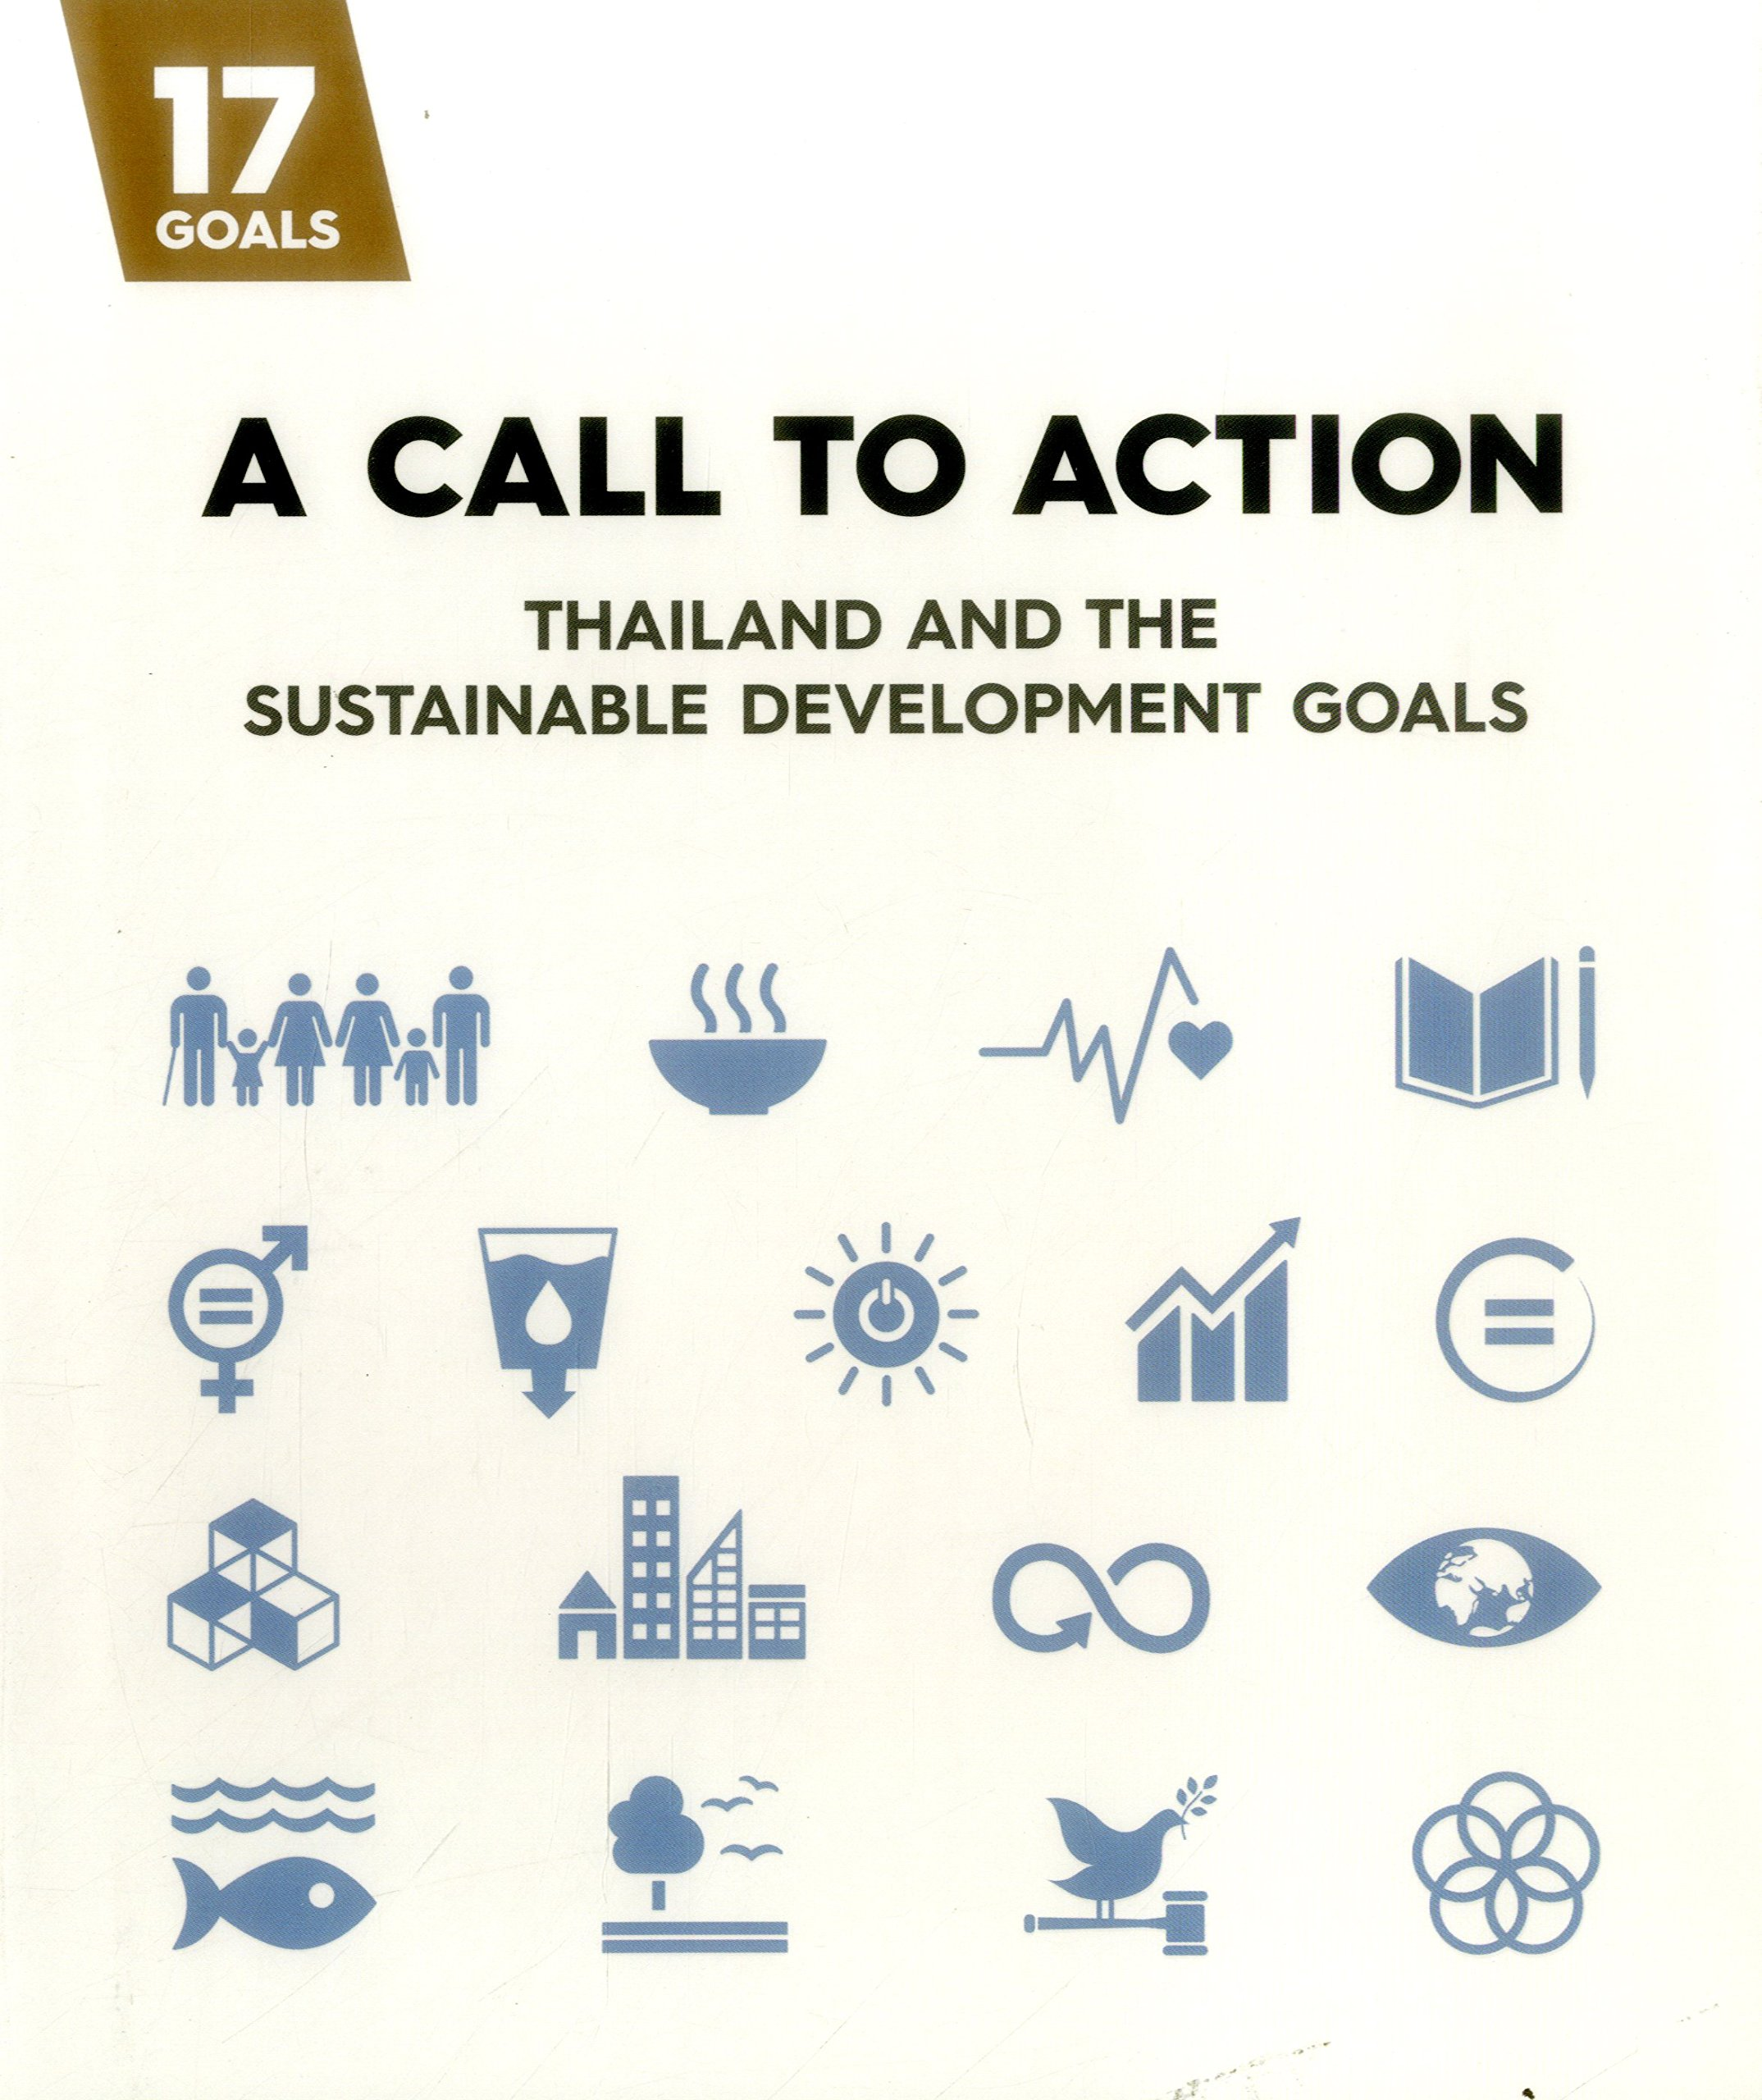 A Call to Action: Thailand and the Sustainable Development Goals